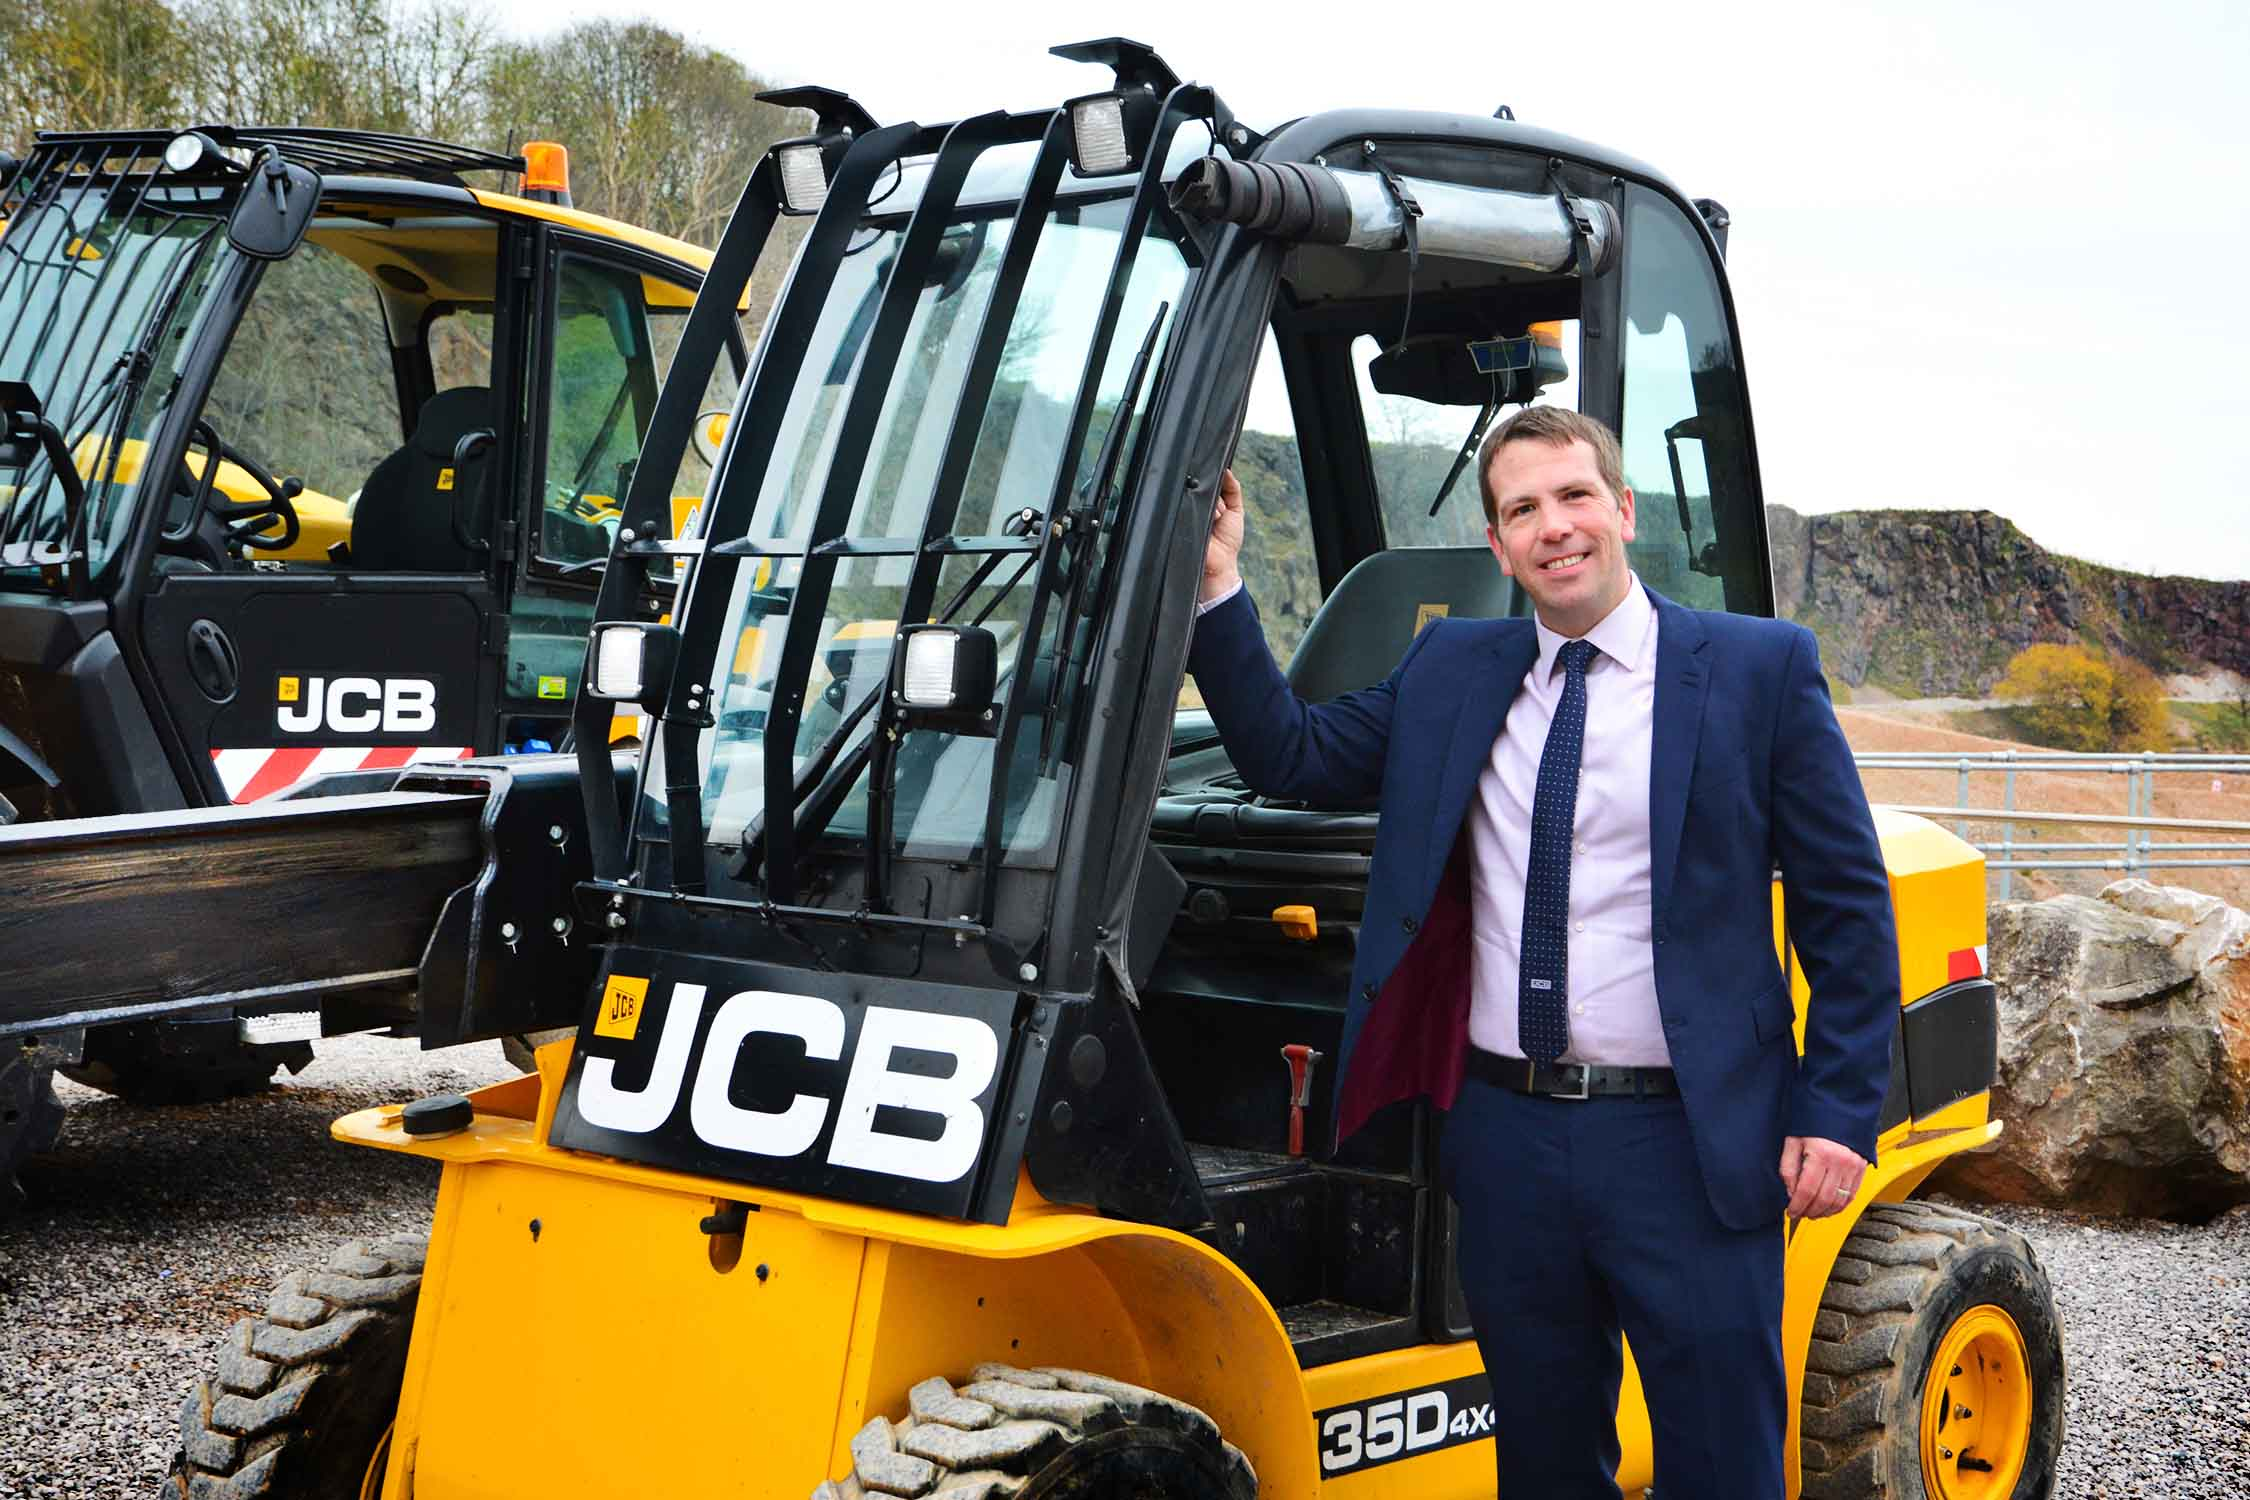 David Banks, Sales Manager – Waste & Recycling Sector at JCB: SEVEN TOP TIPS TO BEING SAFE AND PRODUCTIVE